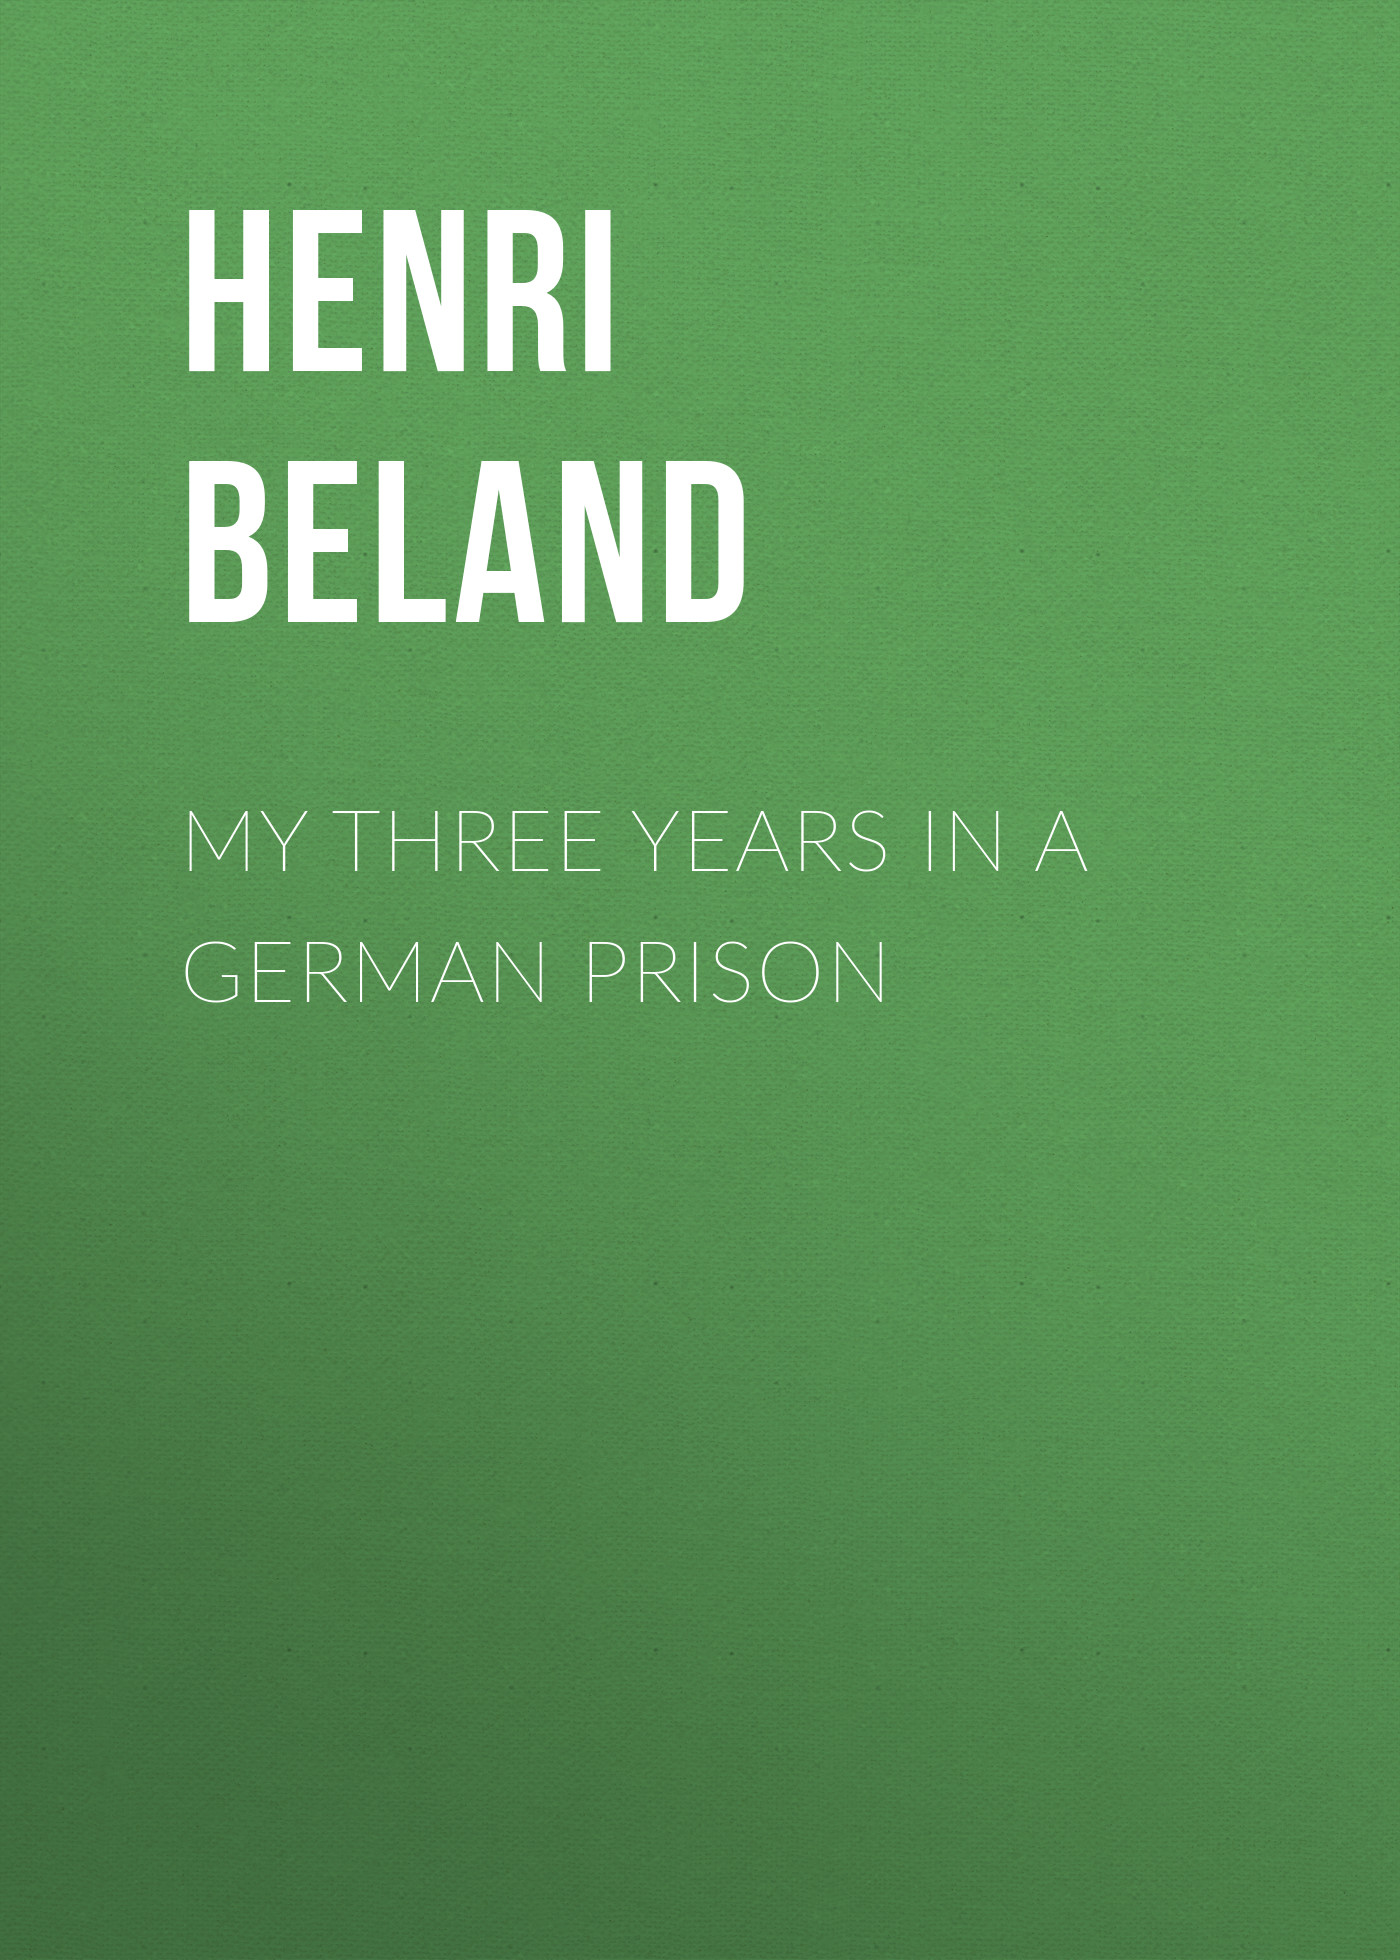 Beland Henri Severin My Three Years in a German Prison prison time